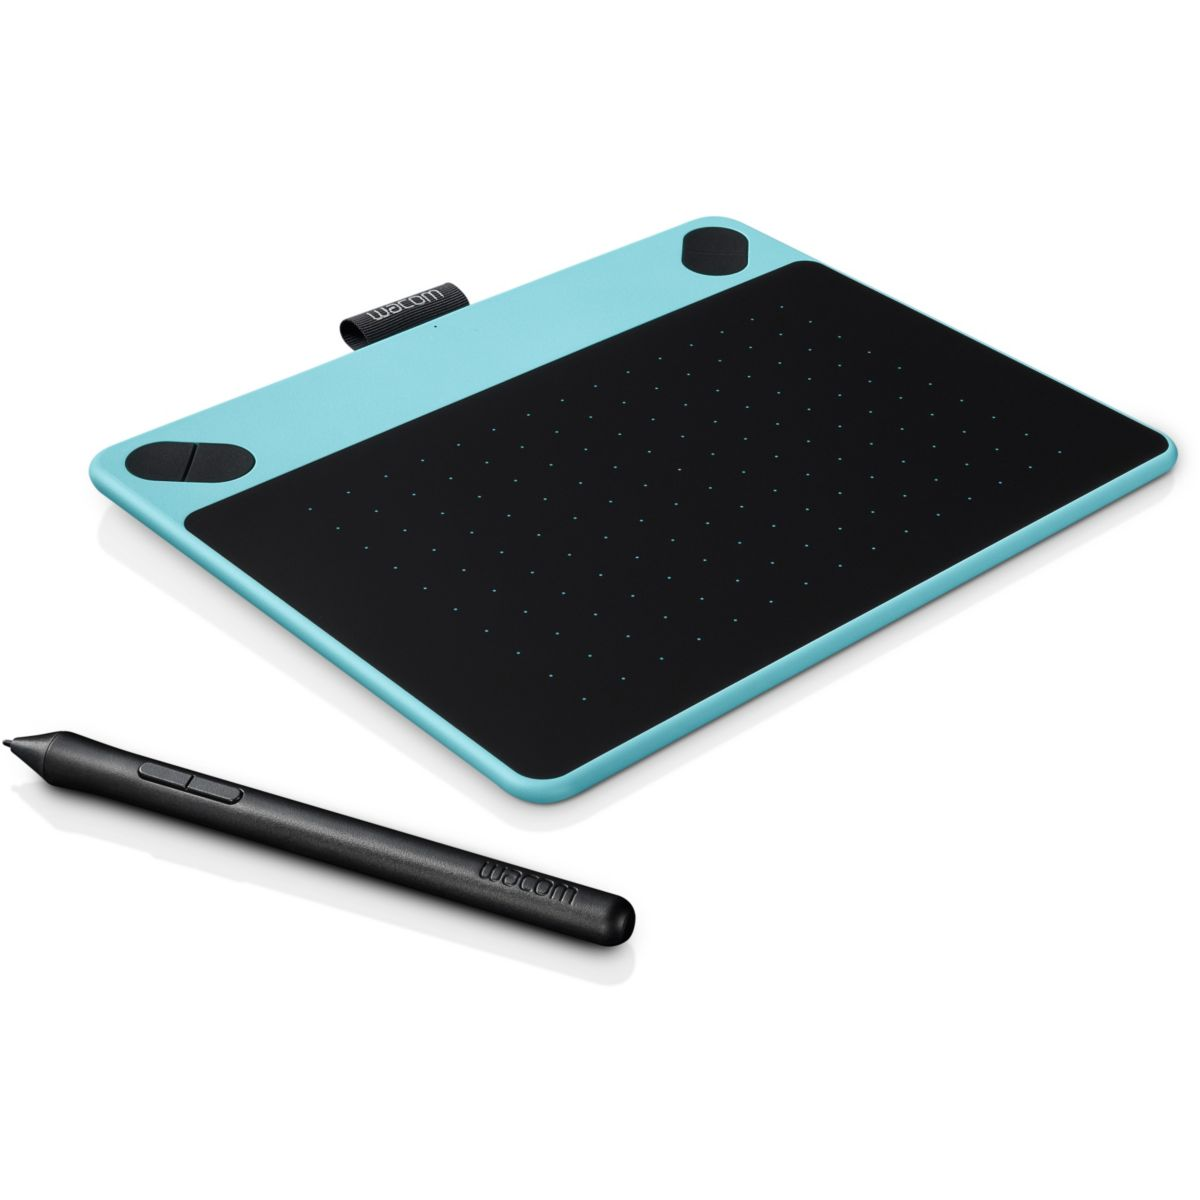 Tablette graph wacom intuos comic blue p – 5 € de remise : code cash5